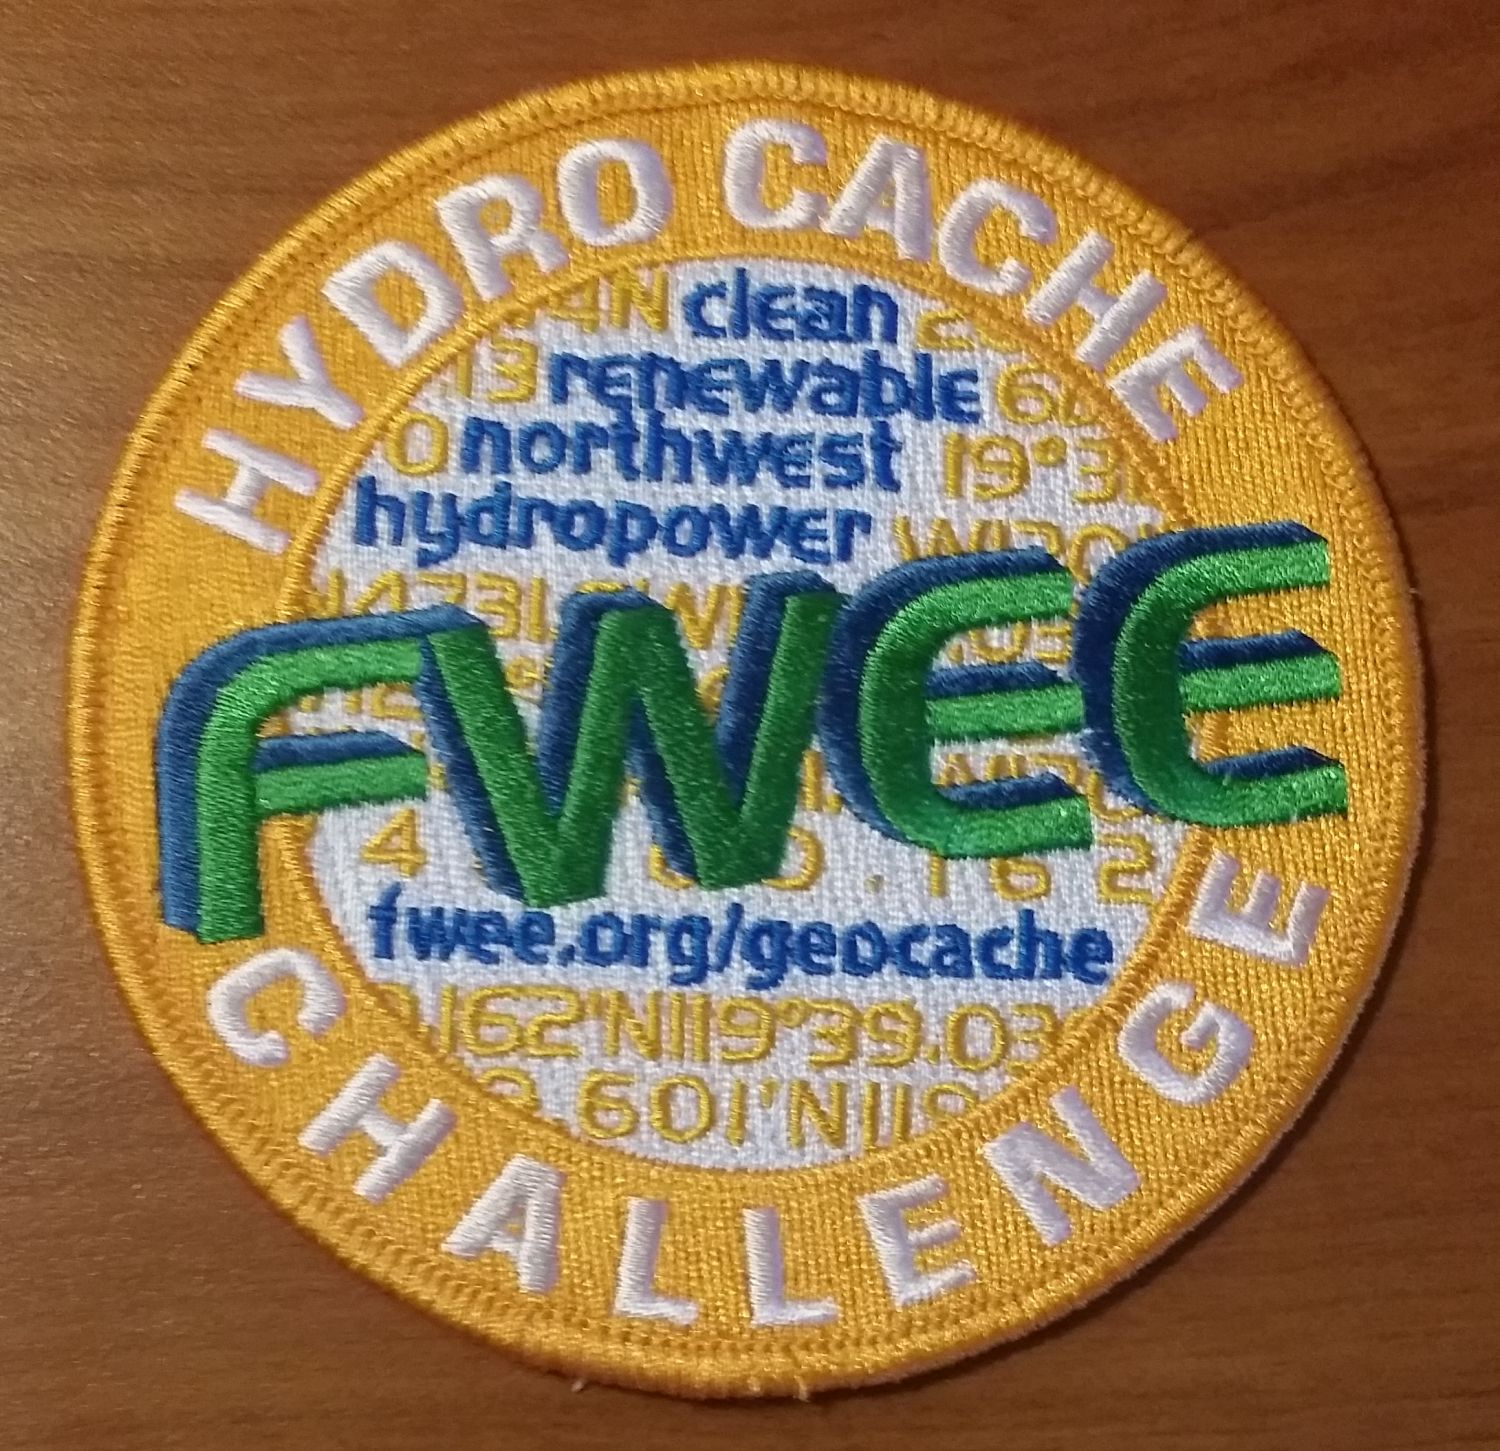 FWEE Hydro Cache Challenge completed